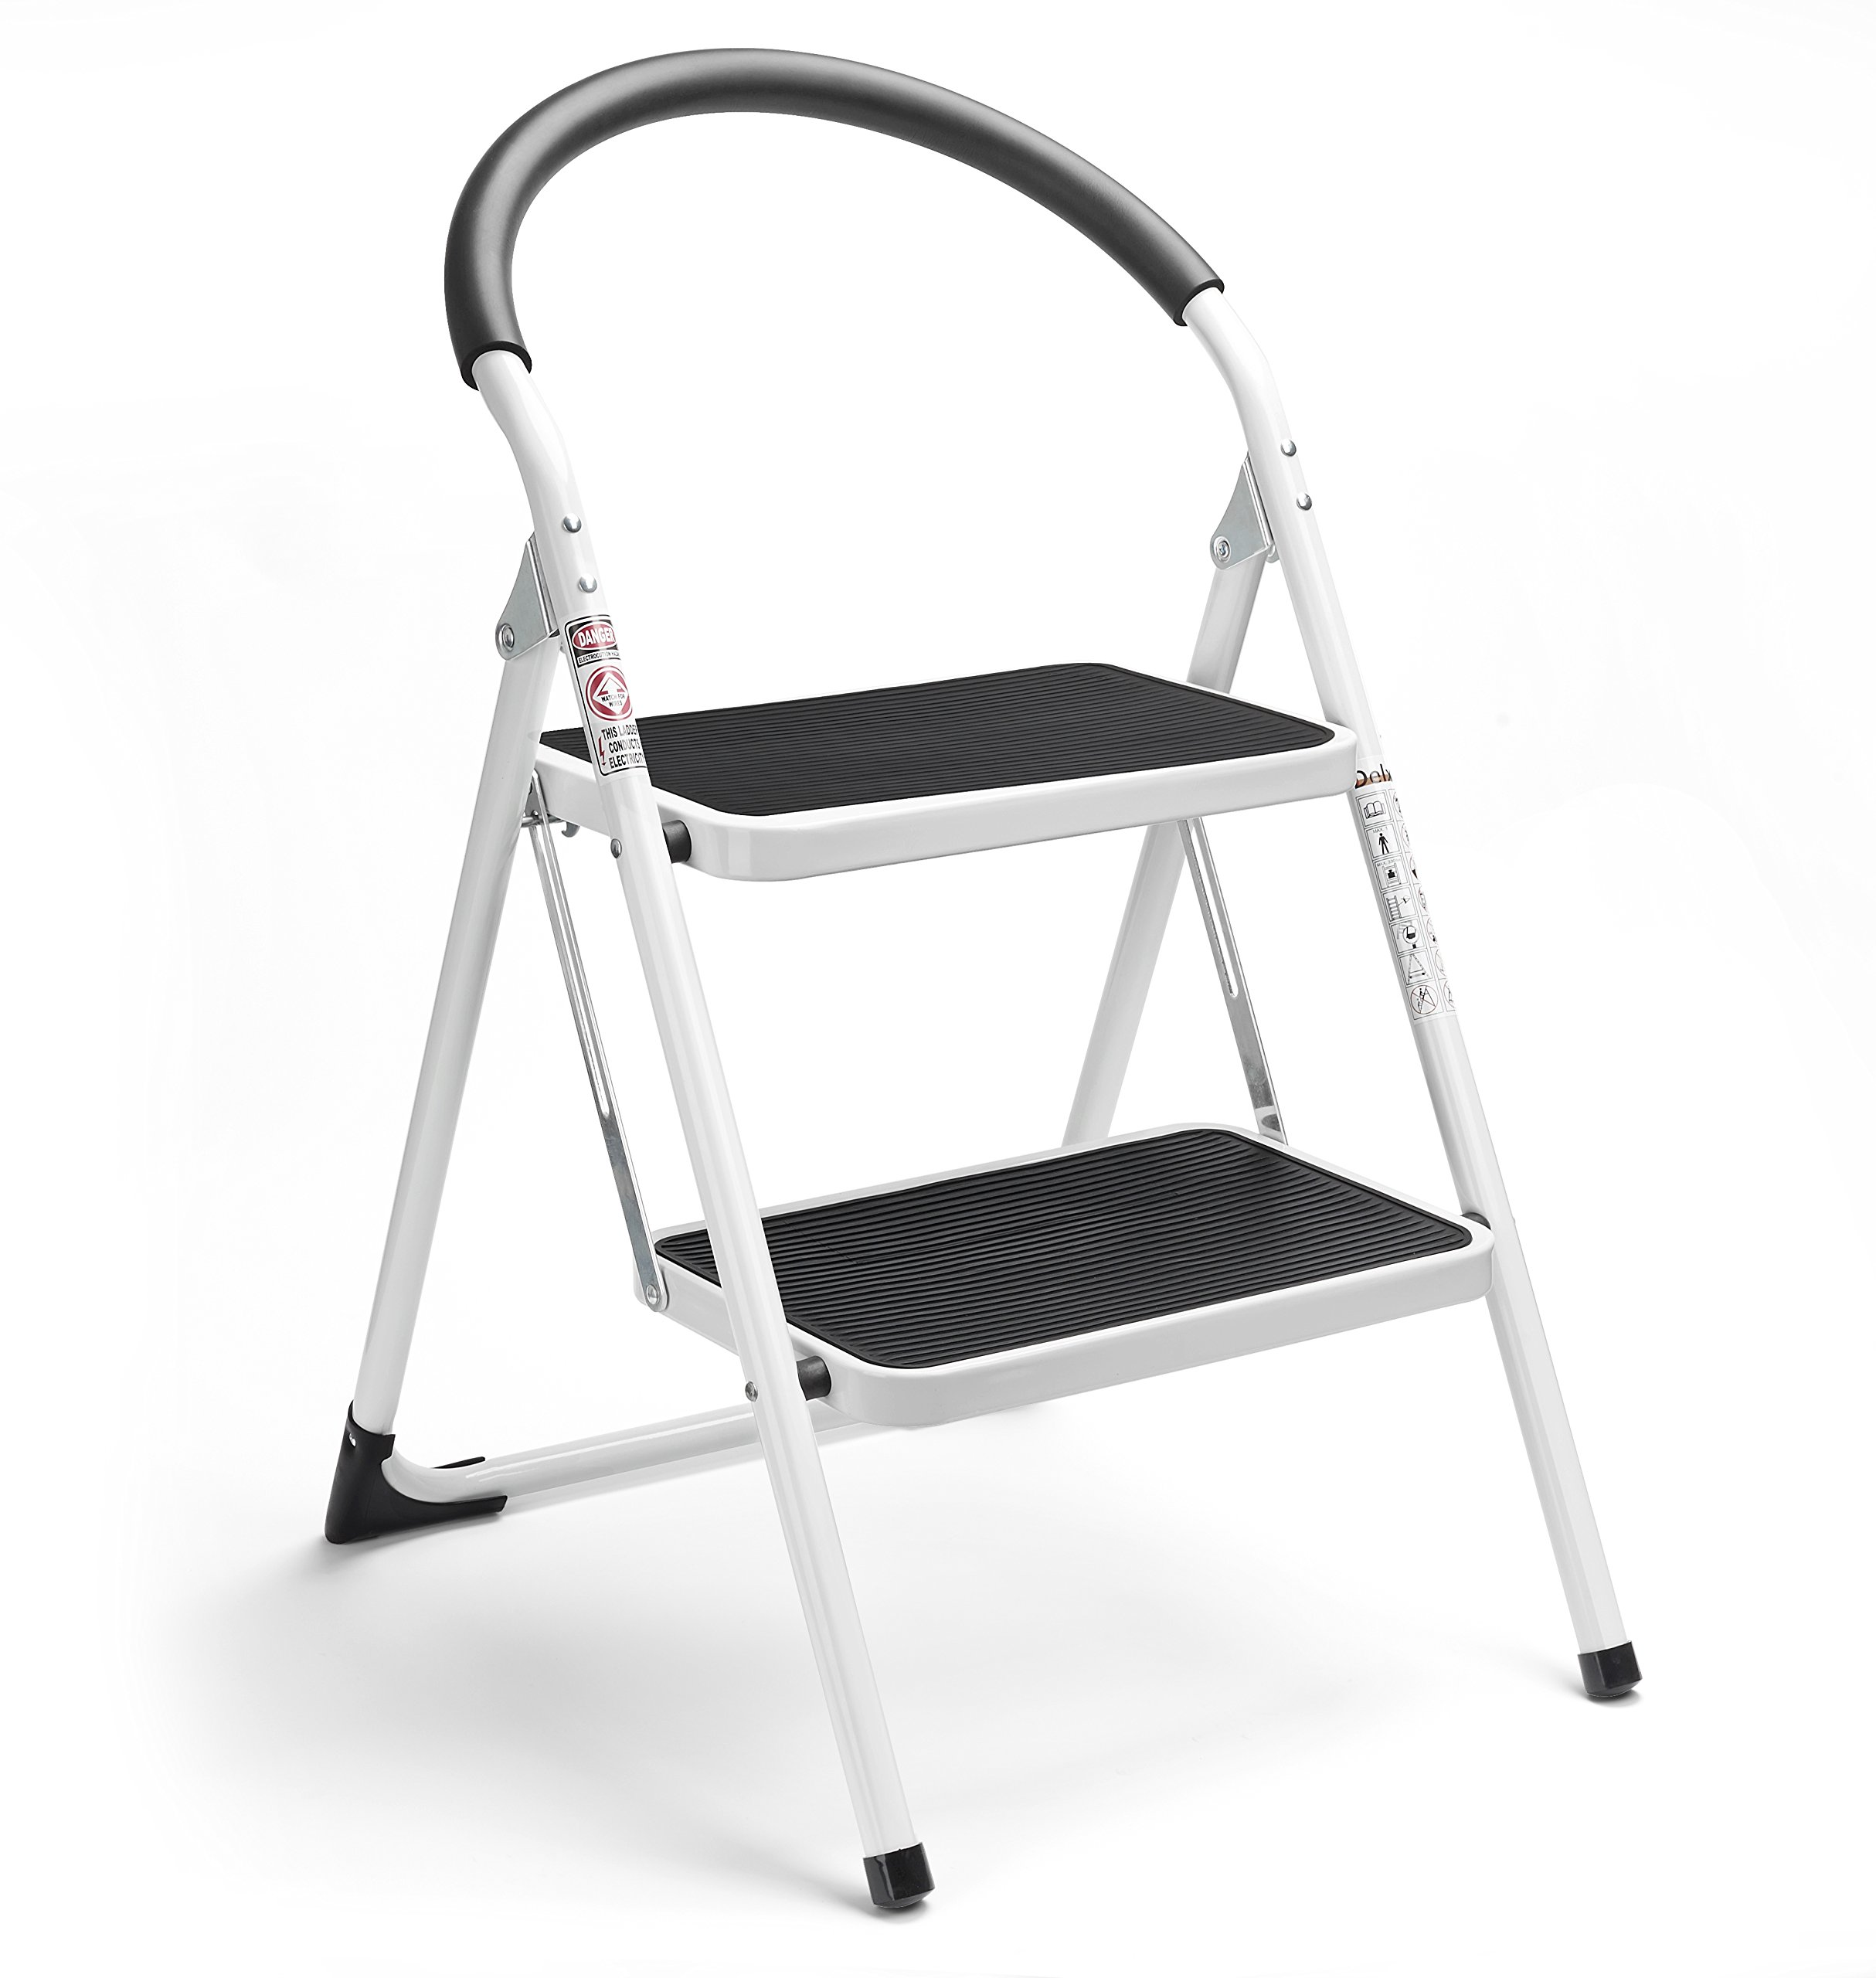 Delxo 2 Step Ladder Folding Step Stool Steel Stepladders